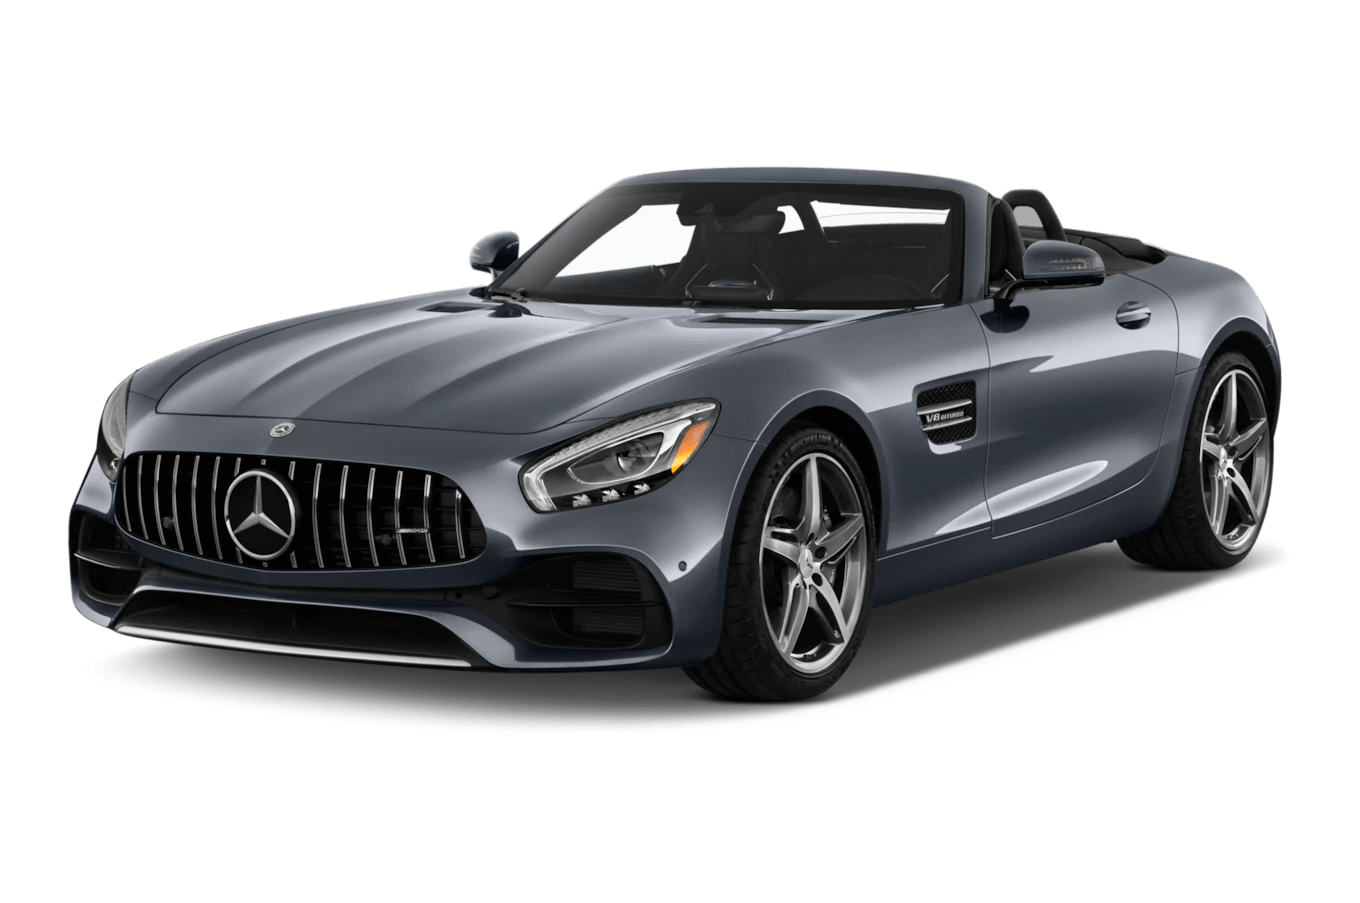 Mercedes Amg Gt Review Price For Sale Specs Models News Carsguide